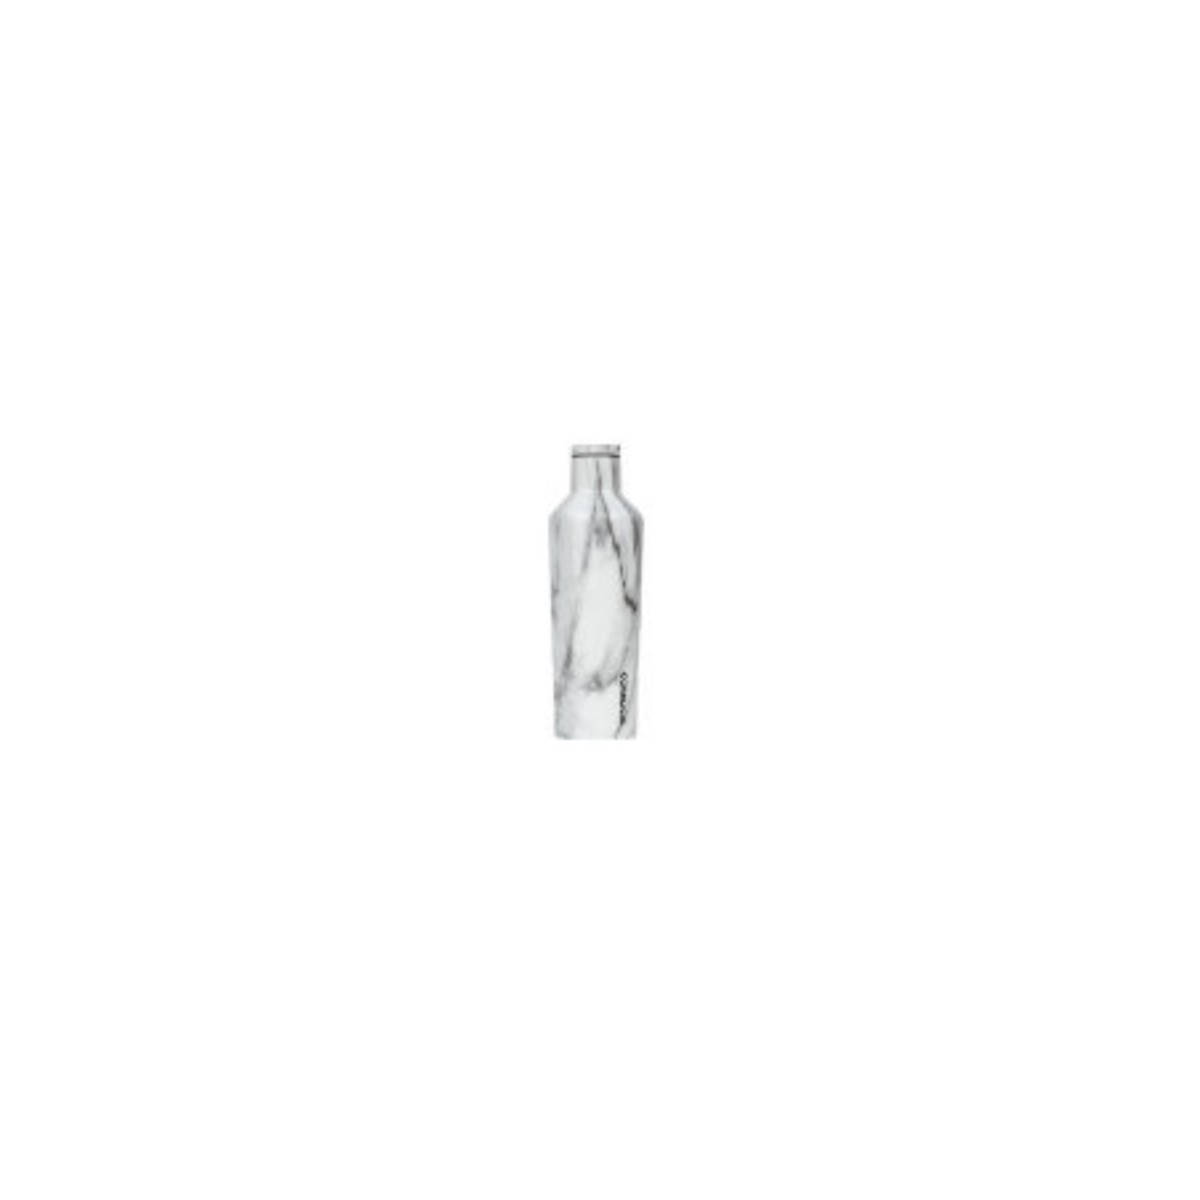 Borraccia termica - Canteen 16oz - 475ml 2016 marmo